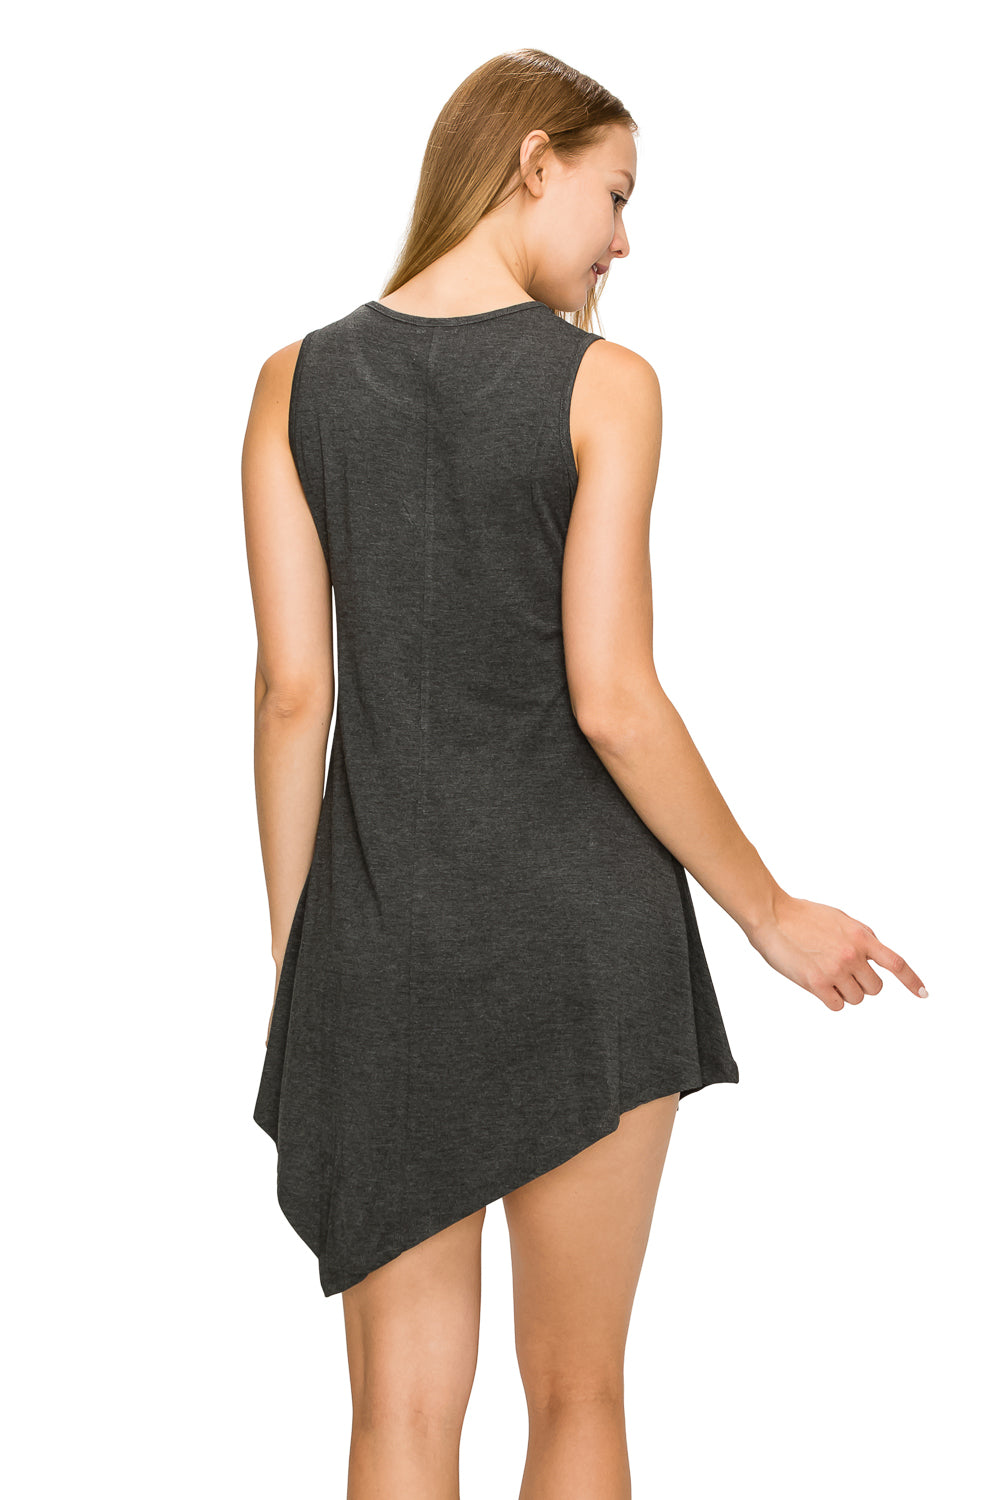 H. Charcoal Sleeveless Tank Tunic - Poplooks